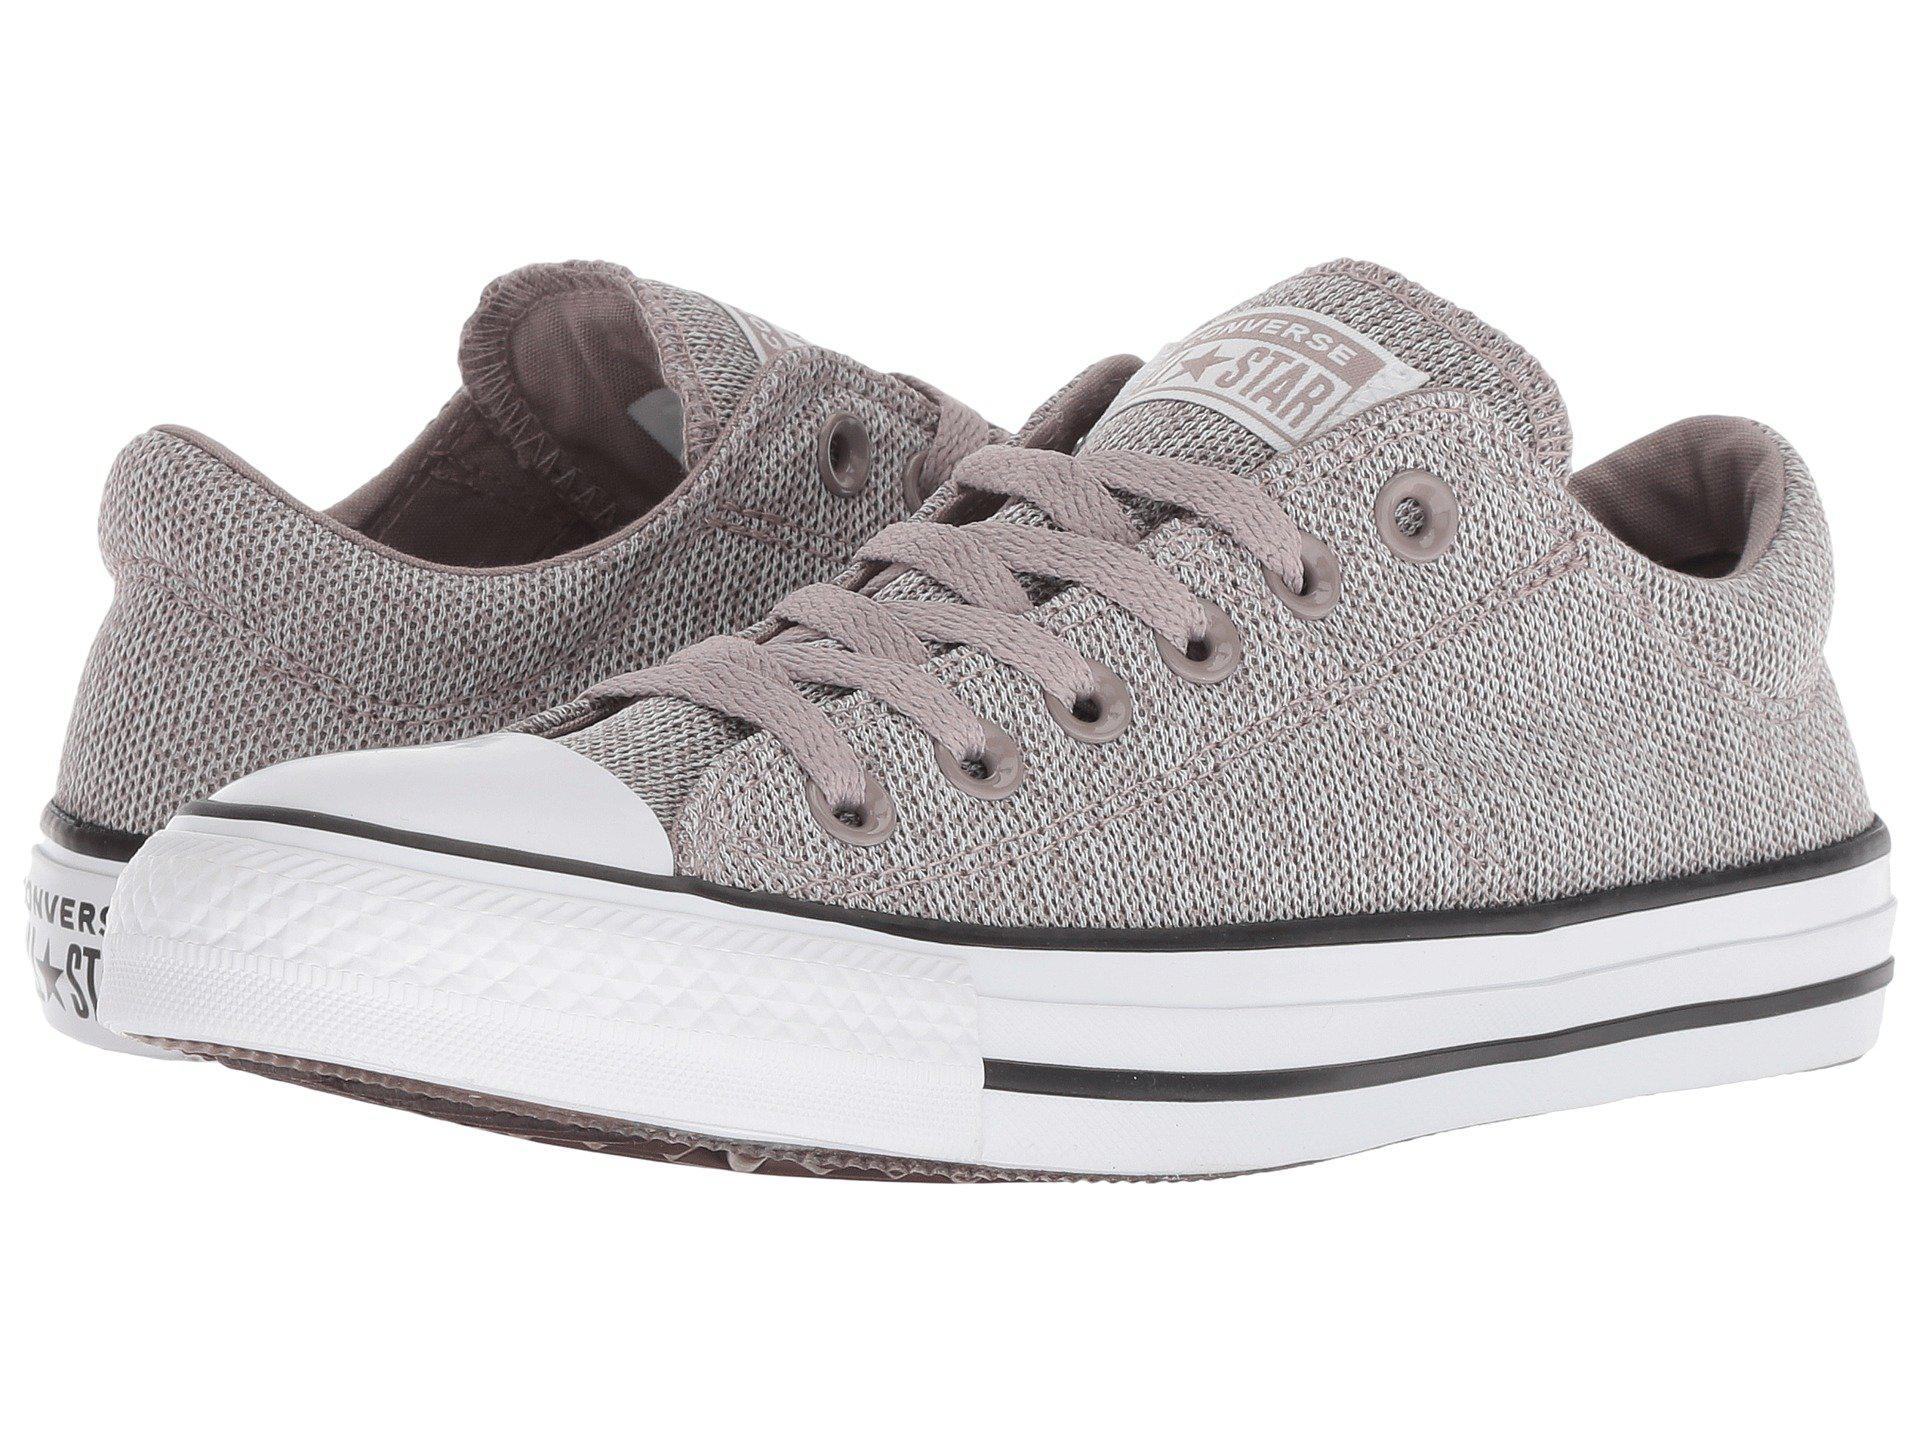 c53bea7c0645ab Lyst - Converse Chuck Taylor All Star Madison - Salt And Pepper Ox ...